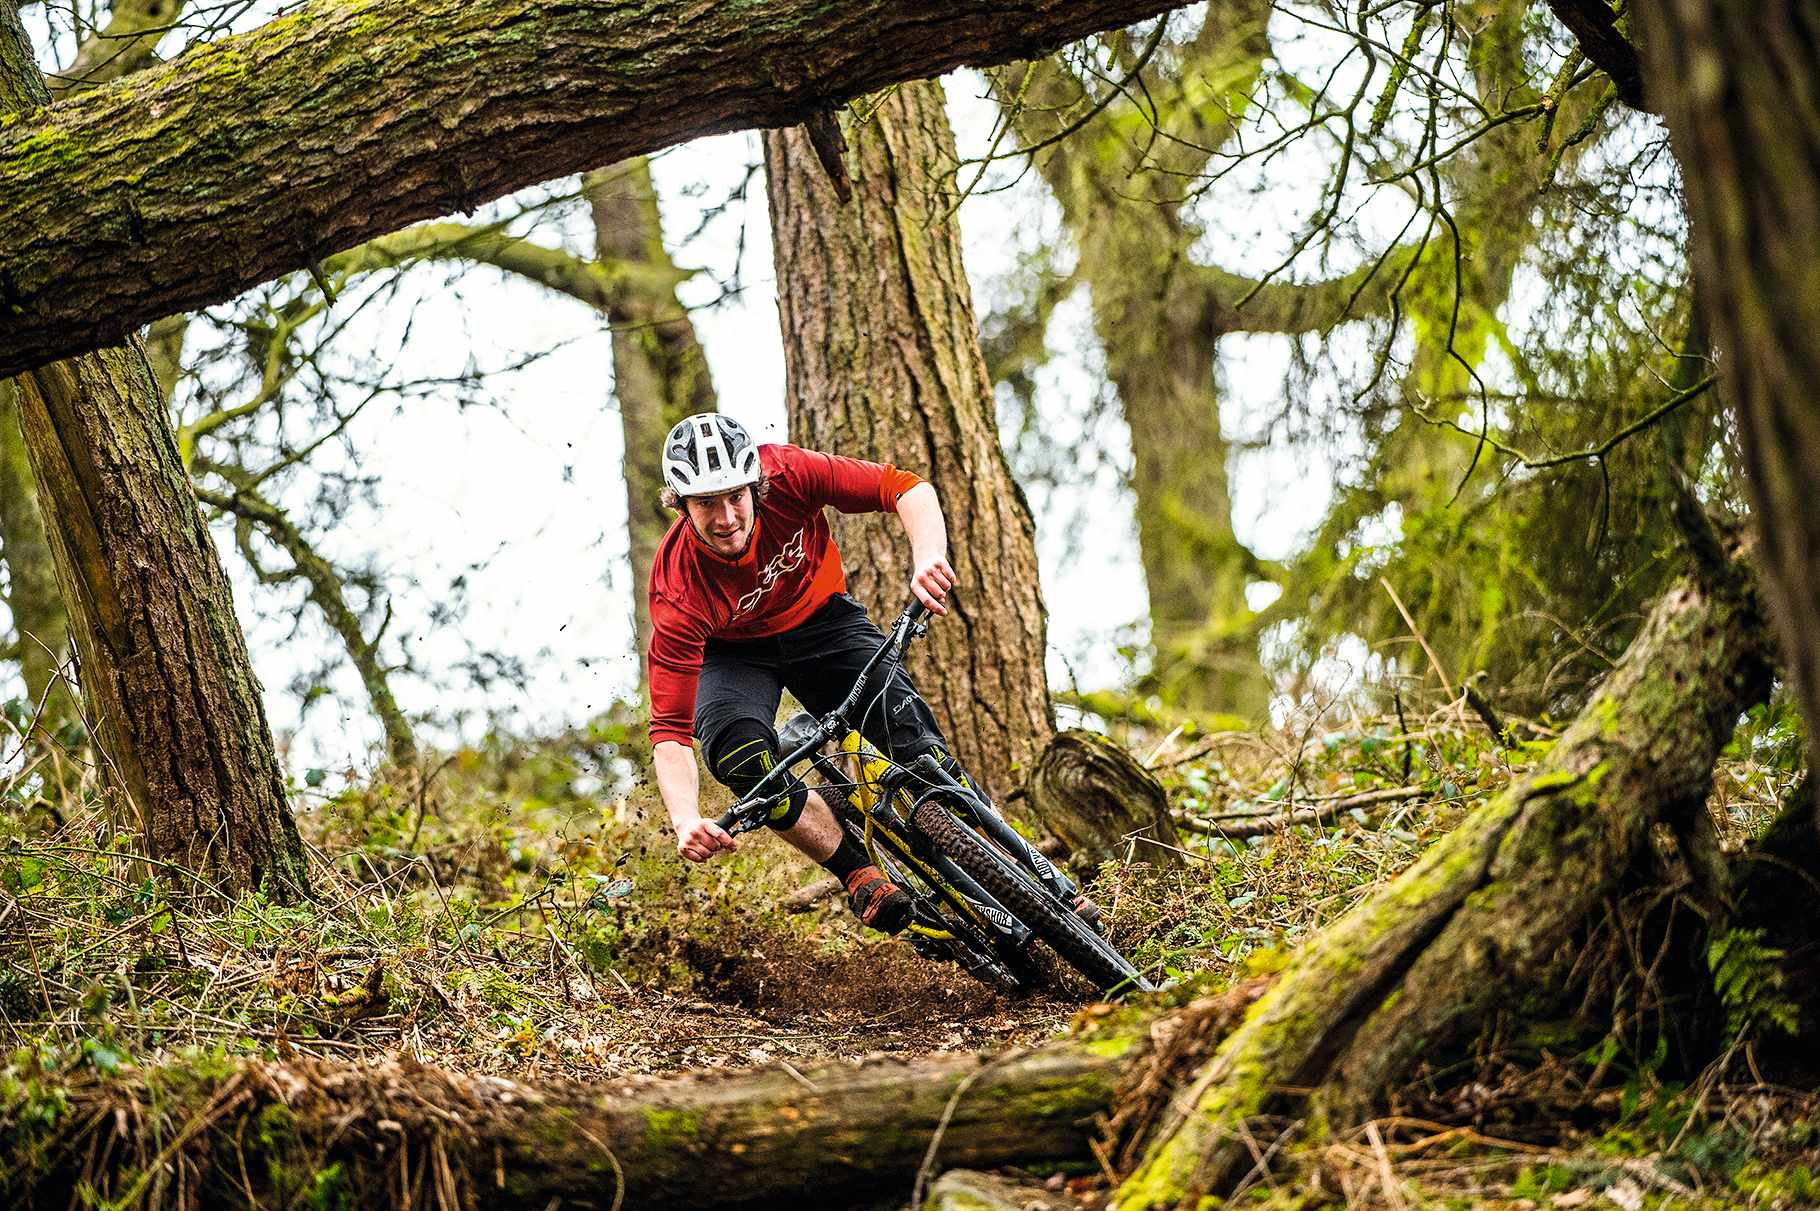 Riding the Stif Cycles Morf hardtail hard